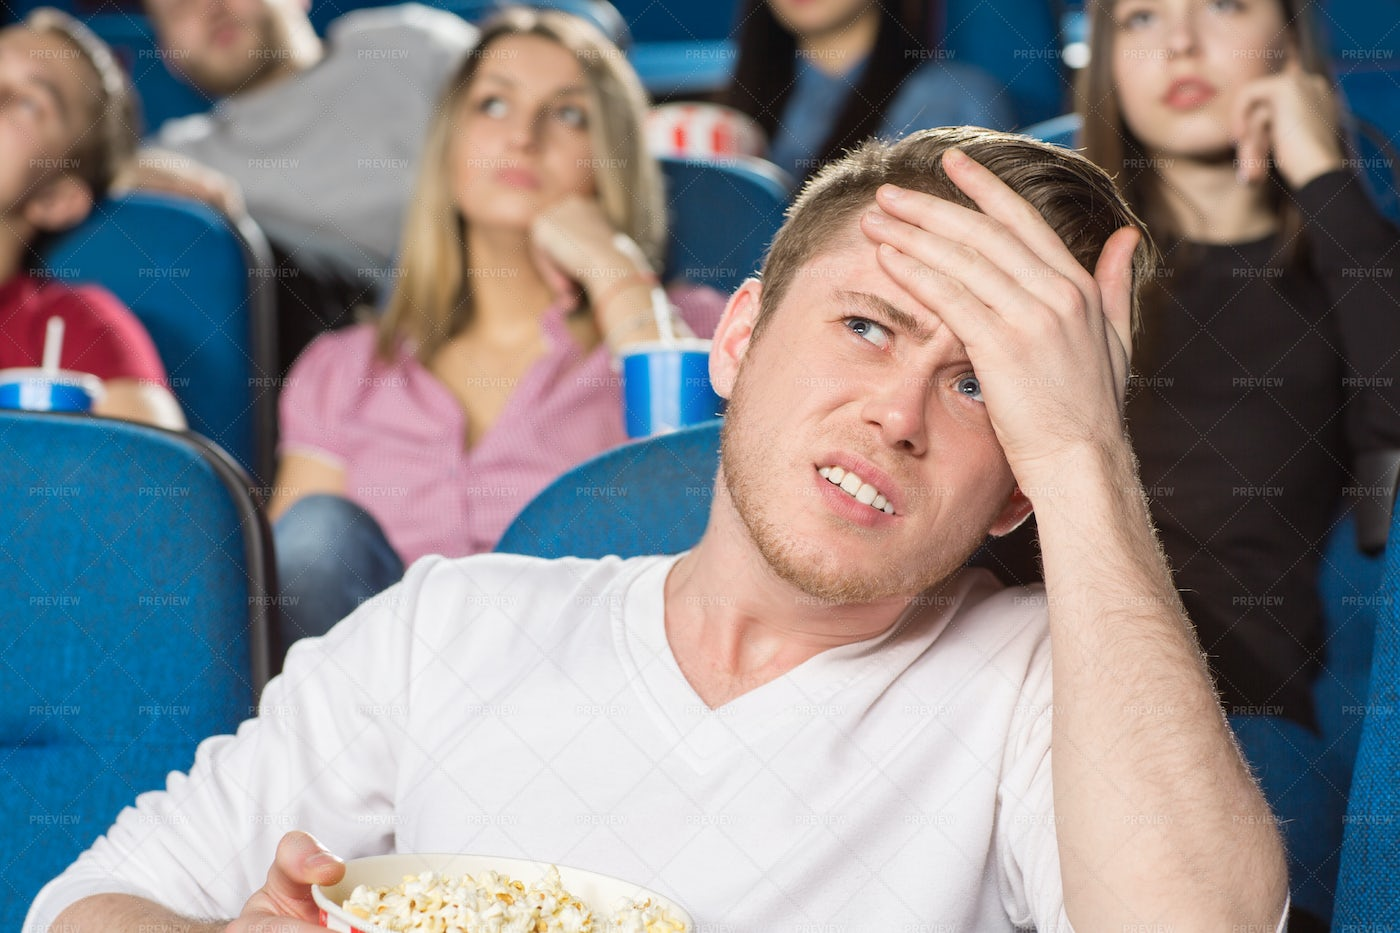 Disbelief At The Theater: Stock Photos